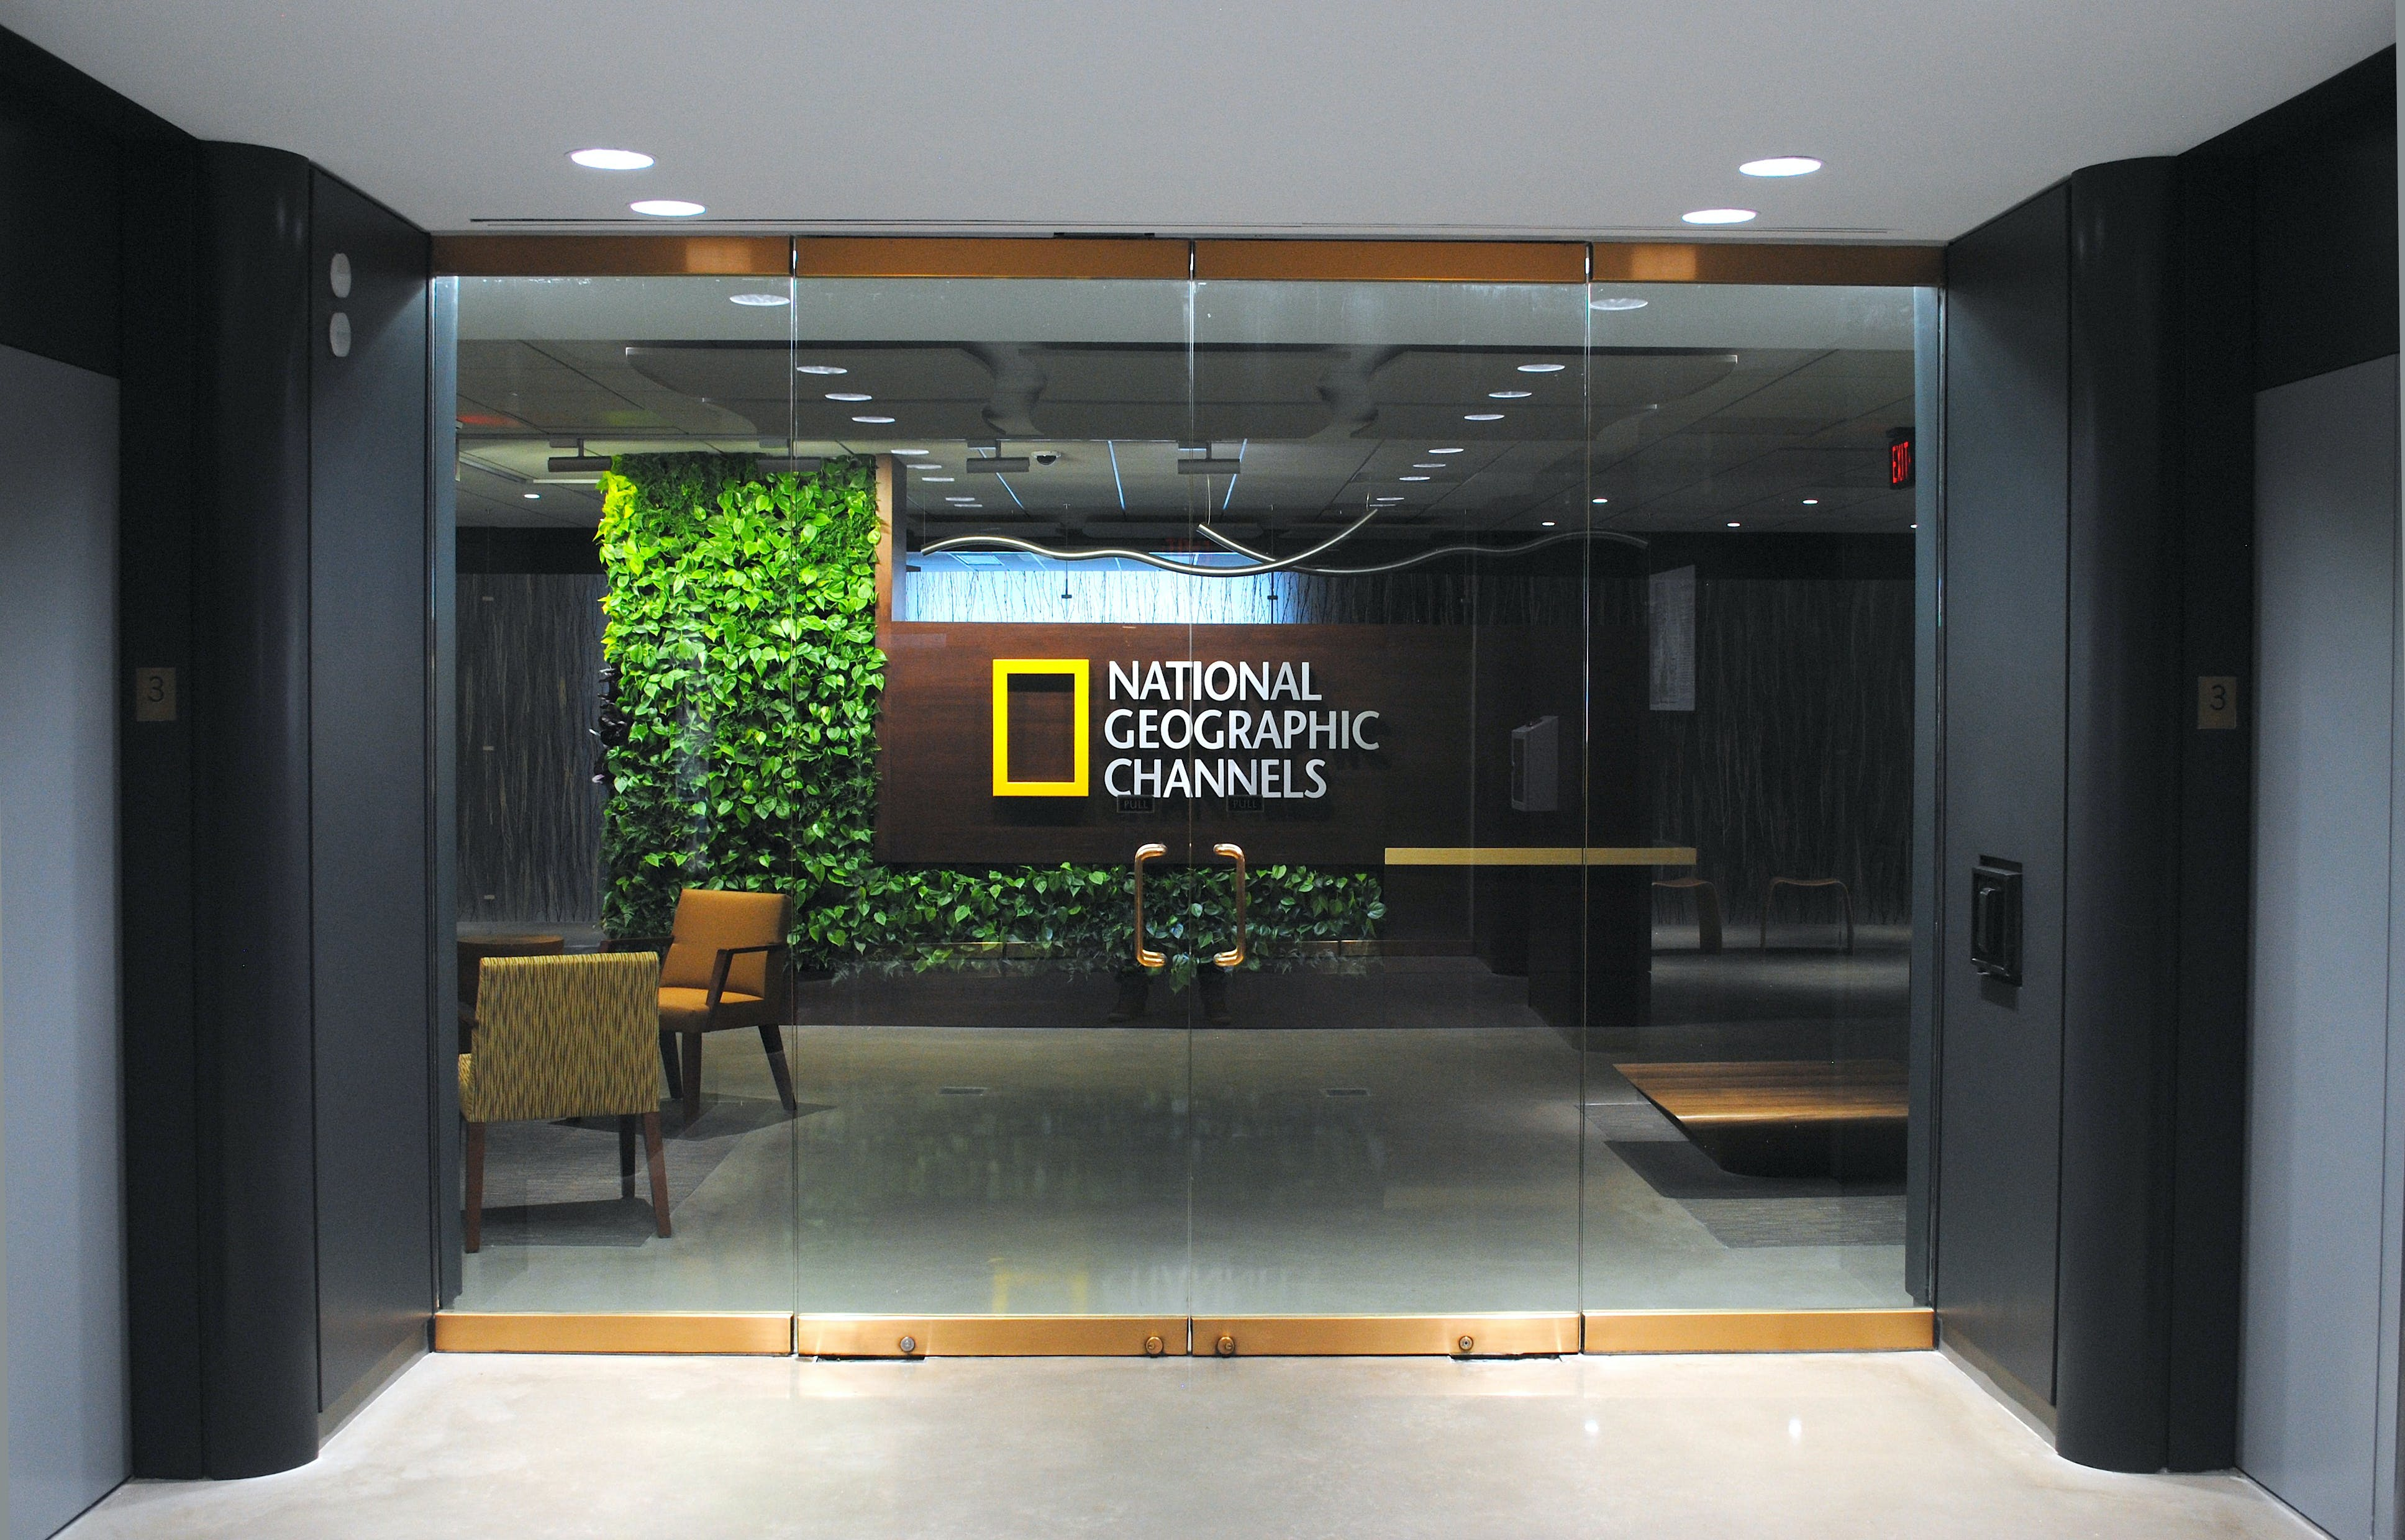 National Geographic Channels Stephen White Archinect